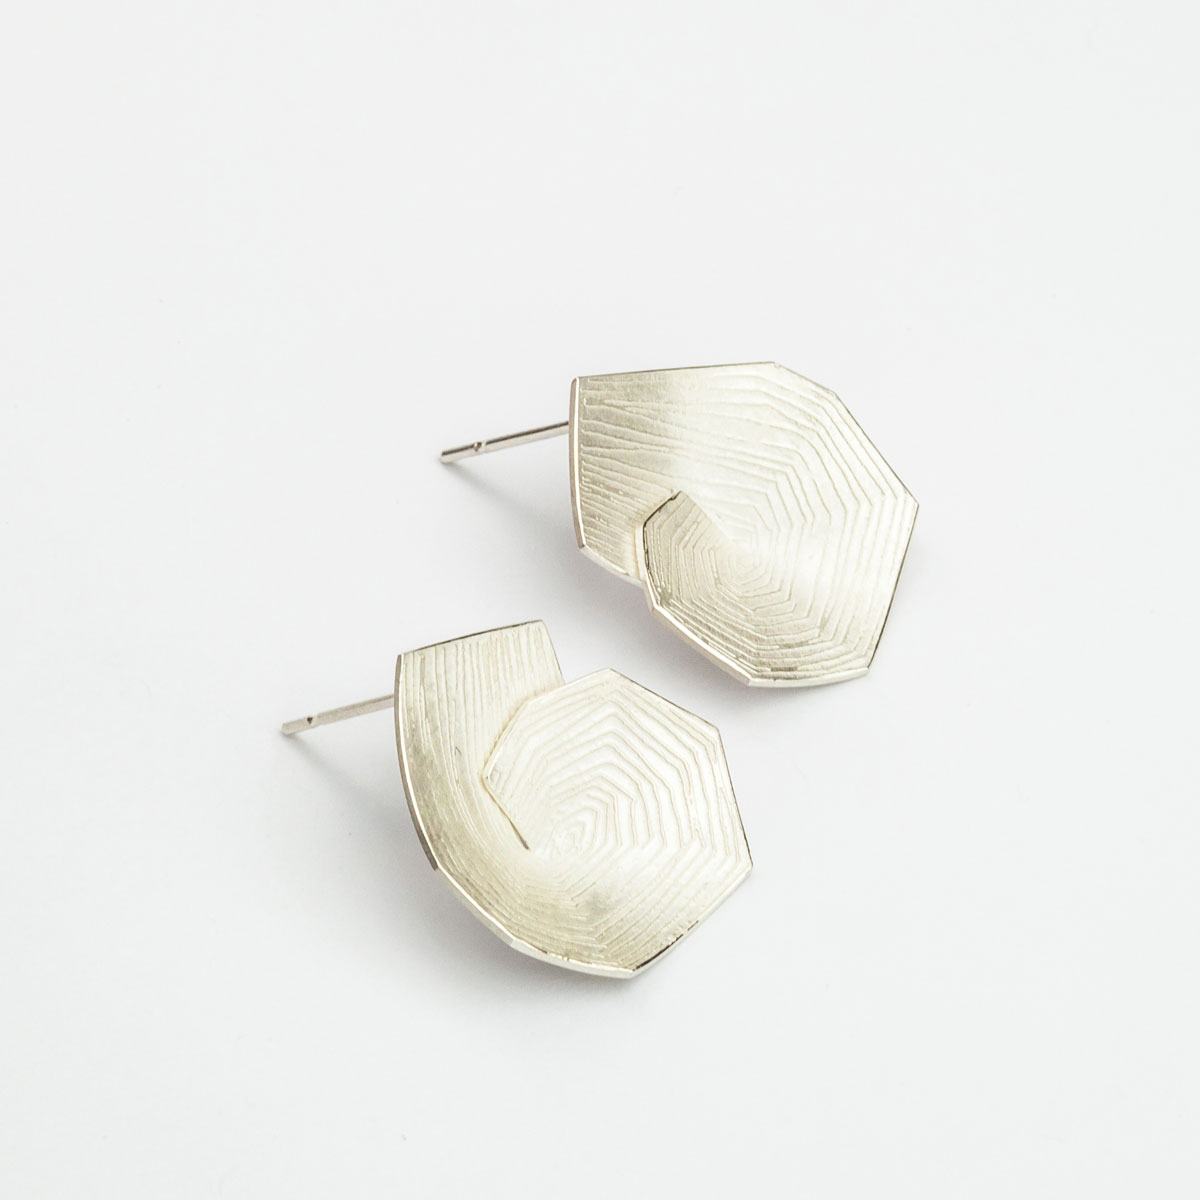 'Lines in Motion' Spiral Silver Earrings